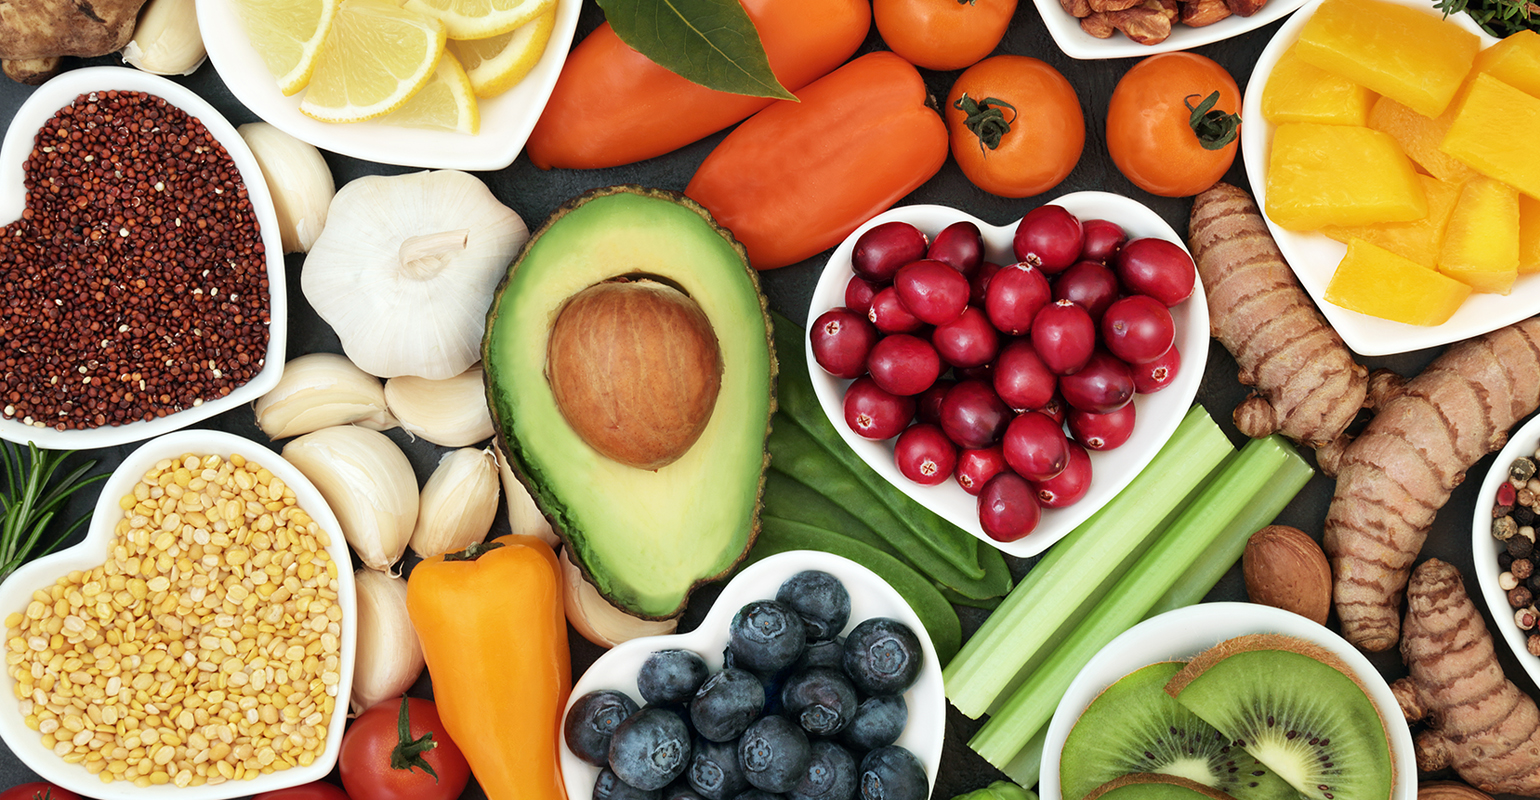 Grocery-store dieticians may help hypertensive patients improve their eating habits